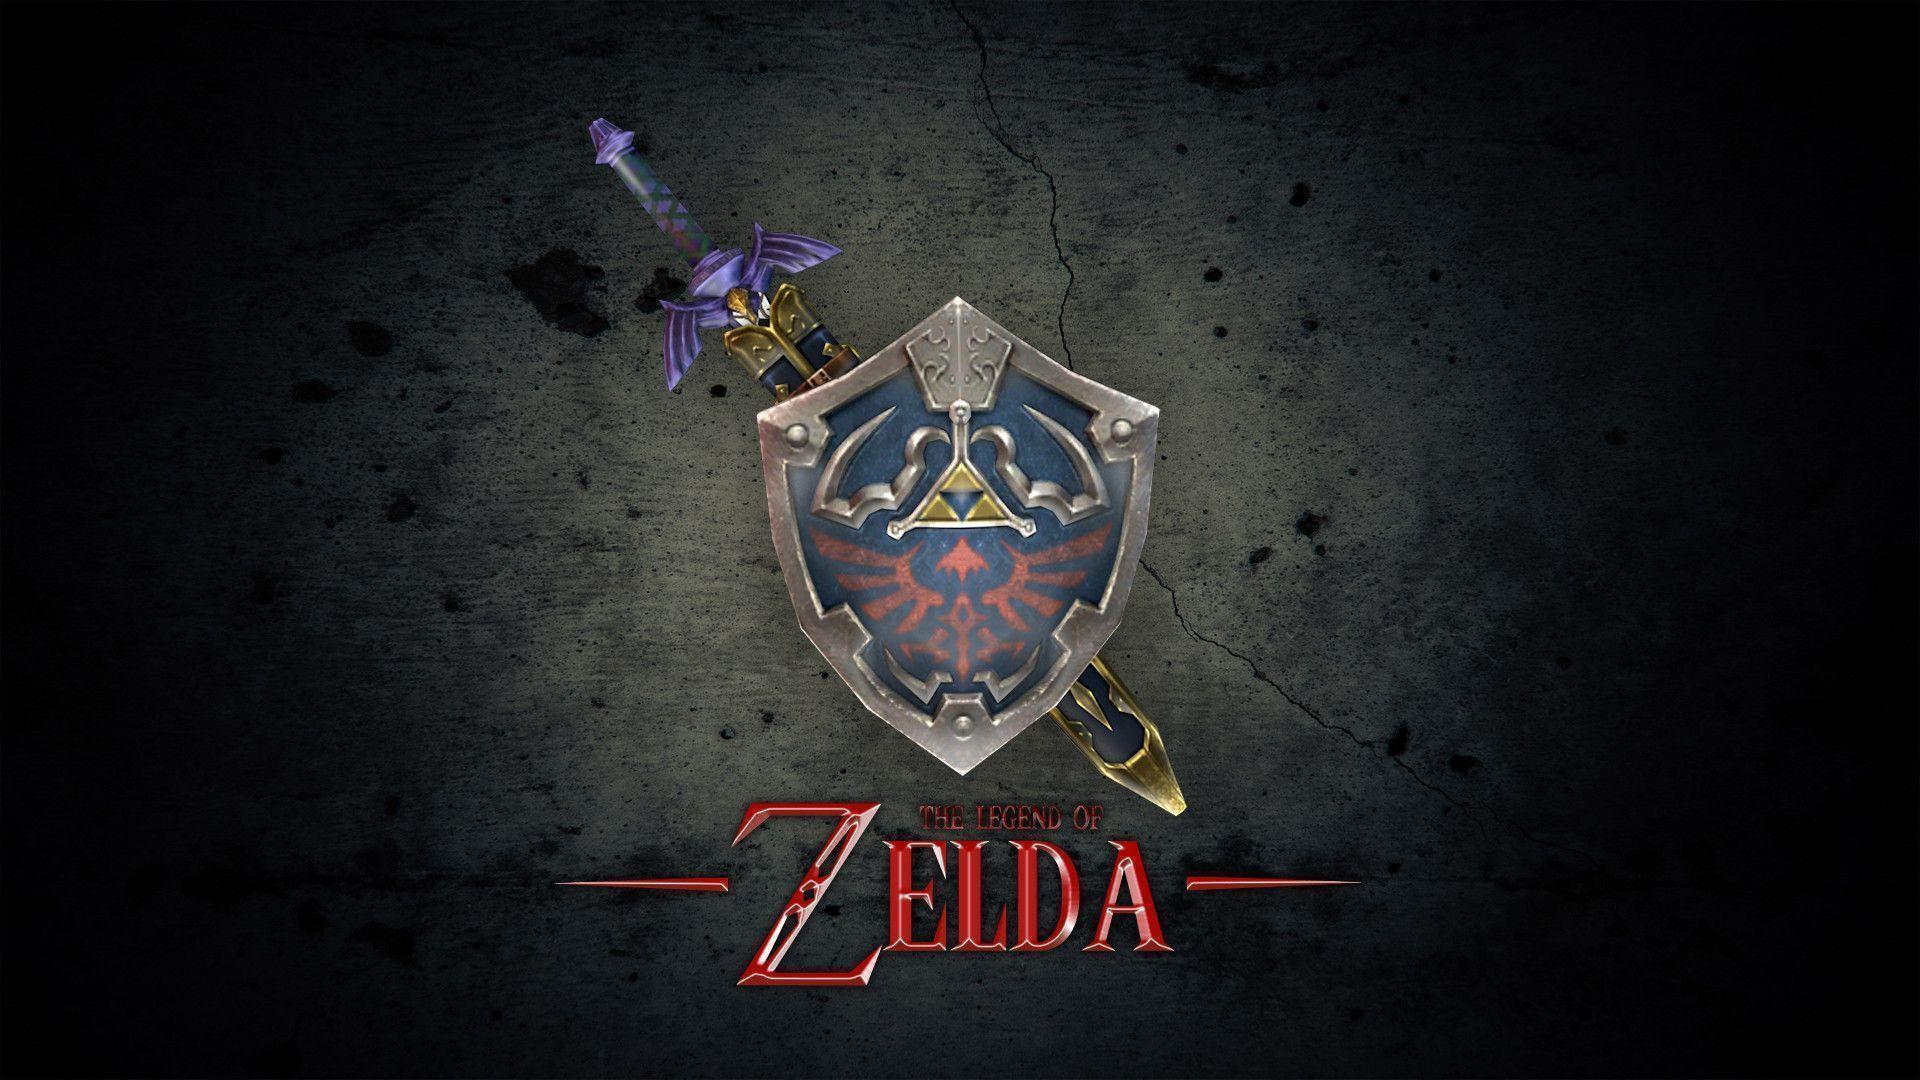 Zelda Wallpapers 1920x1080